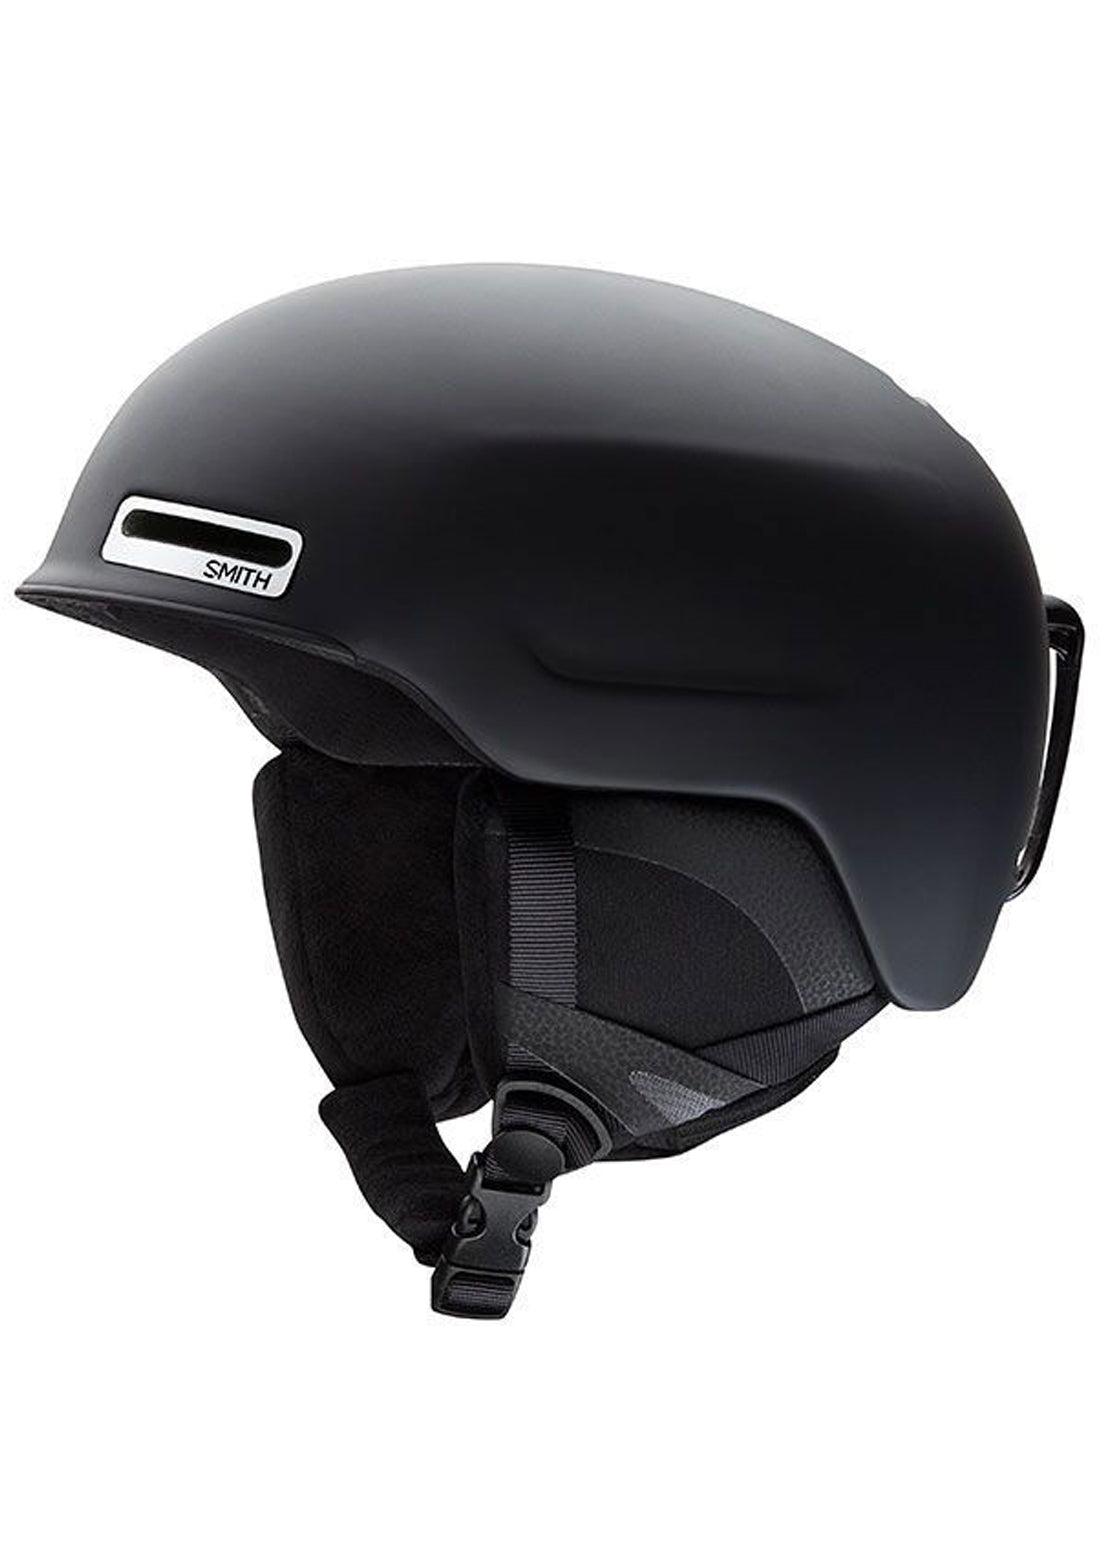 Smith Maze Helmet Black